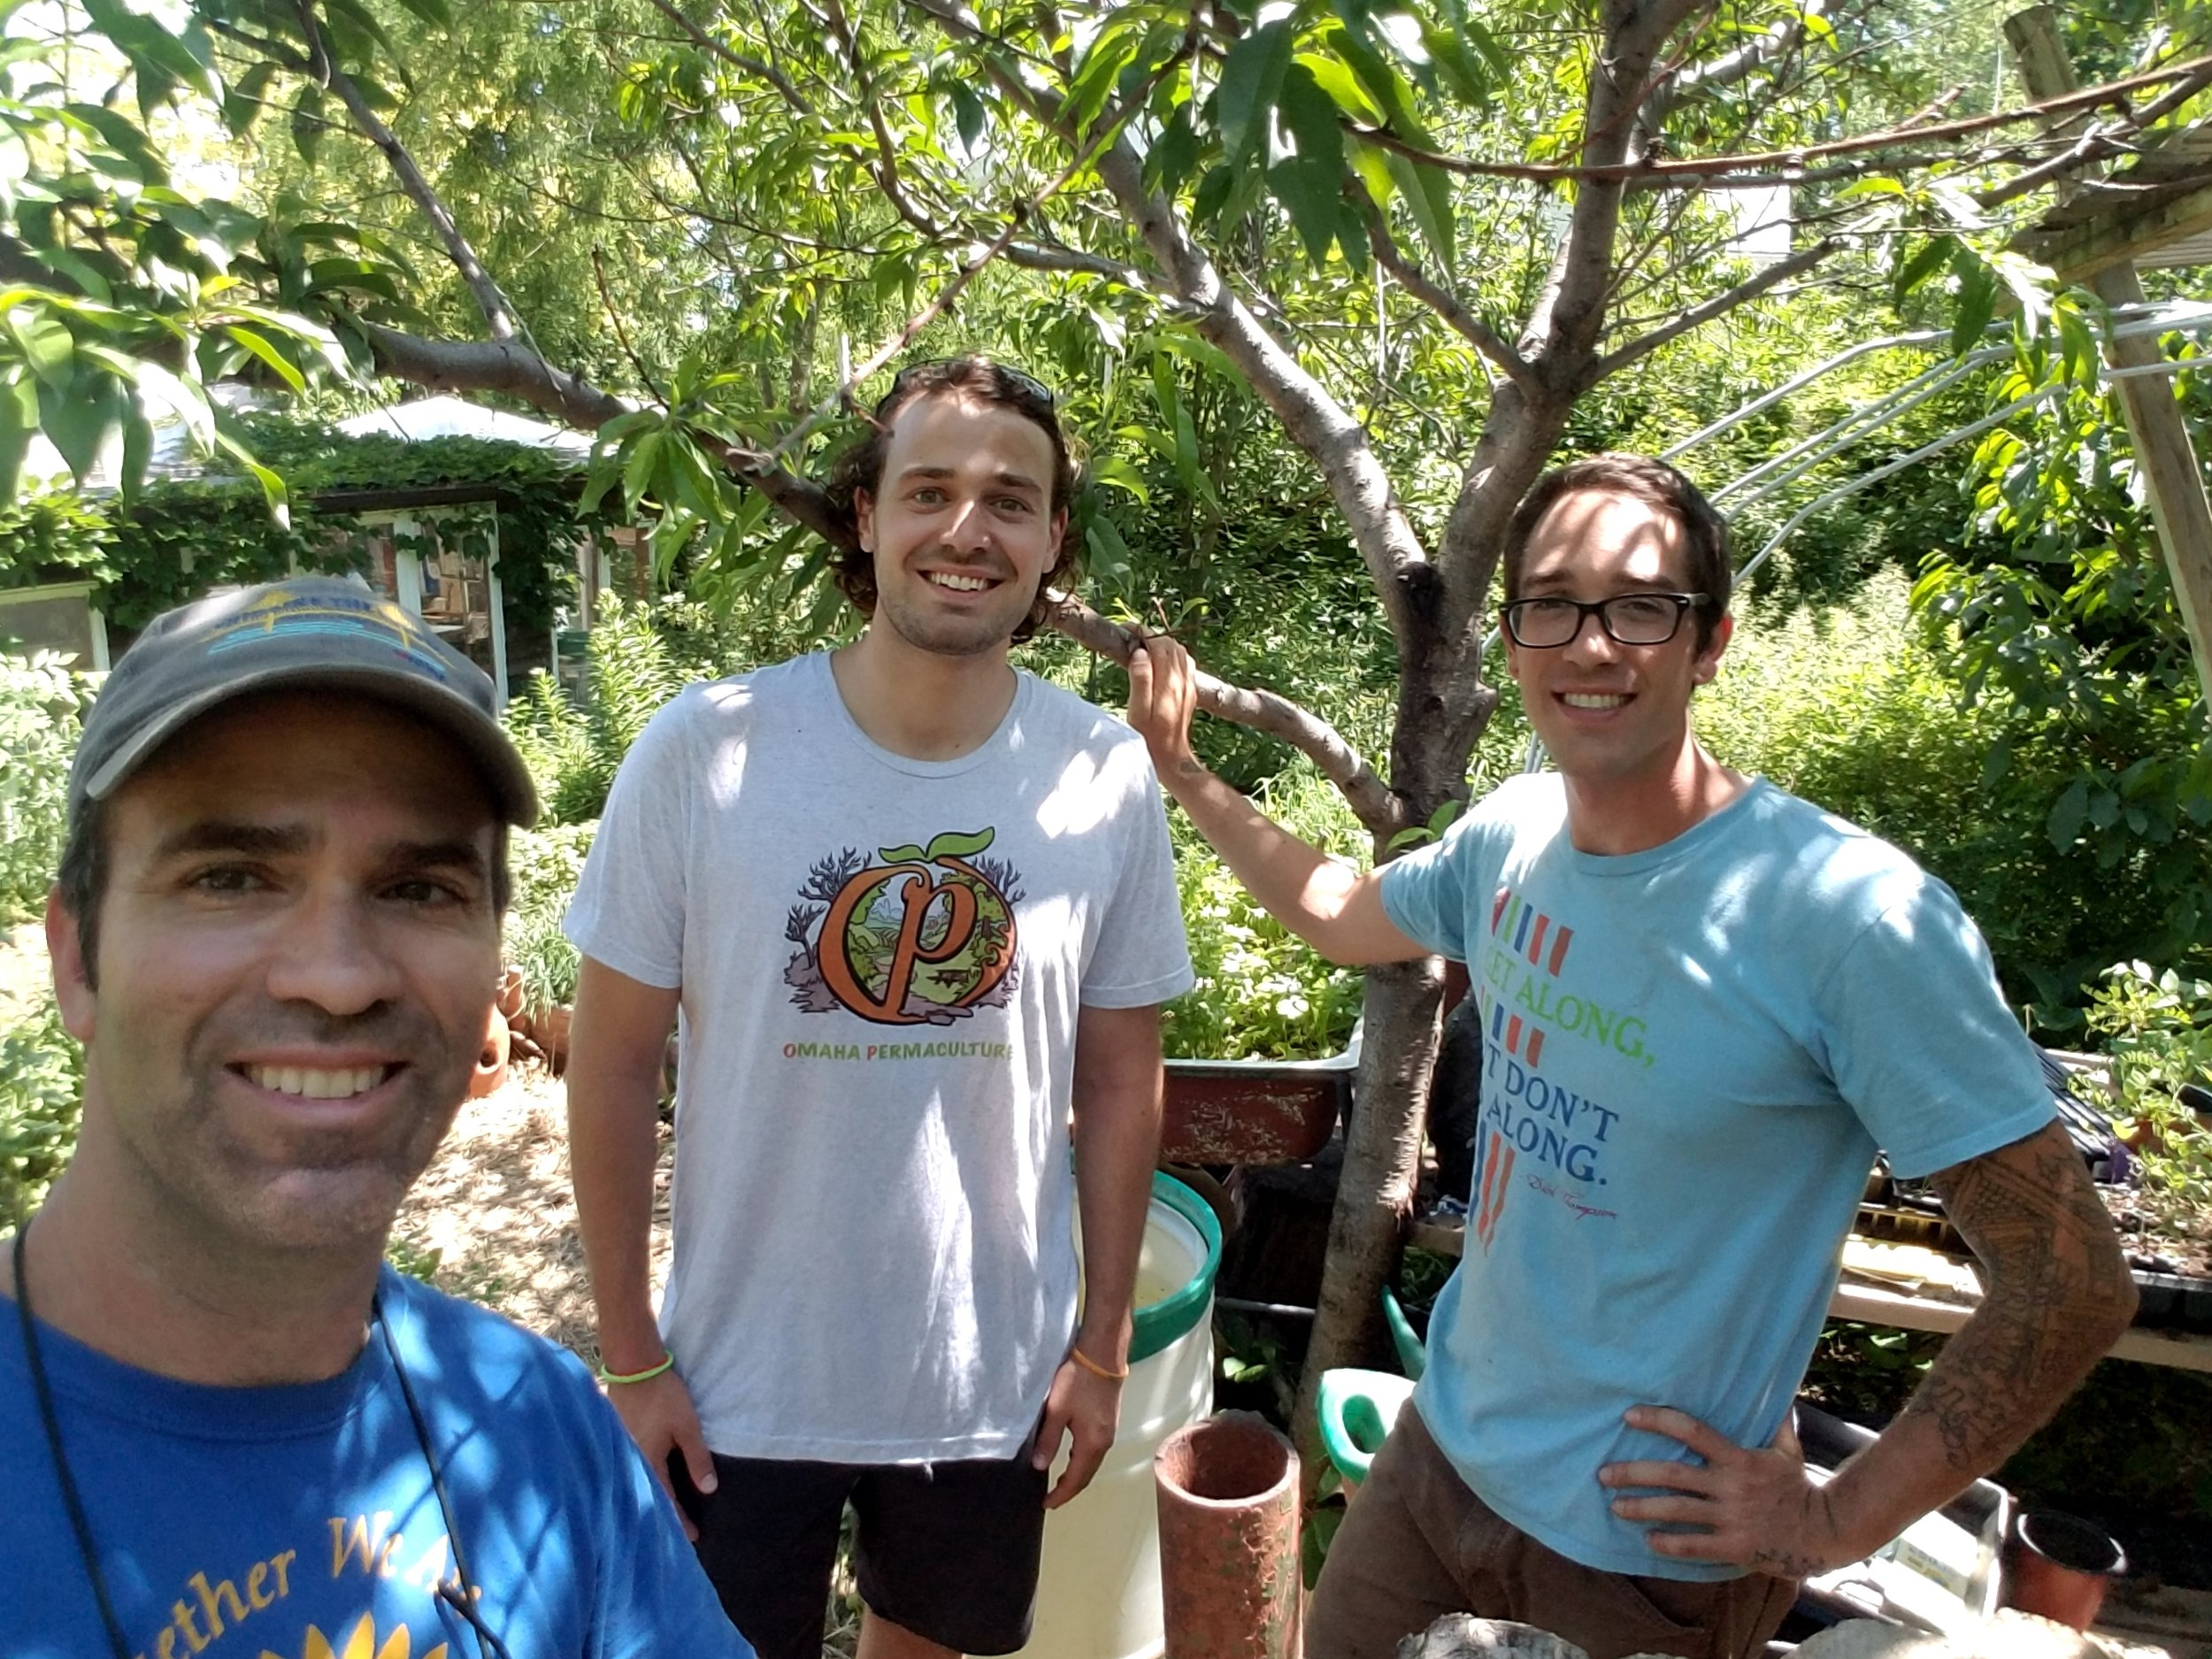 - Here is a picture of Gus, myself, and Dan from left to right. This was my first week on the job and I couldn't of been happier with how these two introduced me to permaculture and sustainable agriculture.